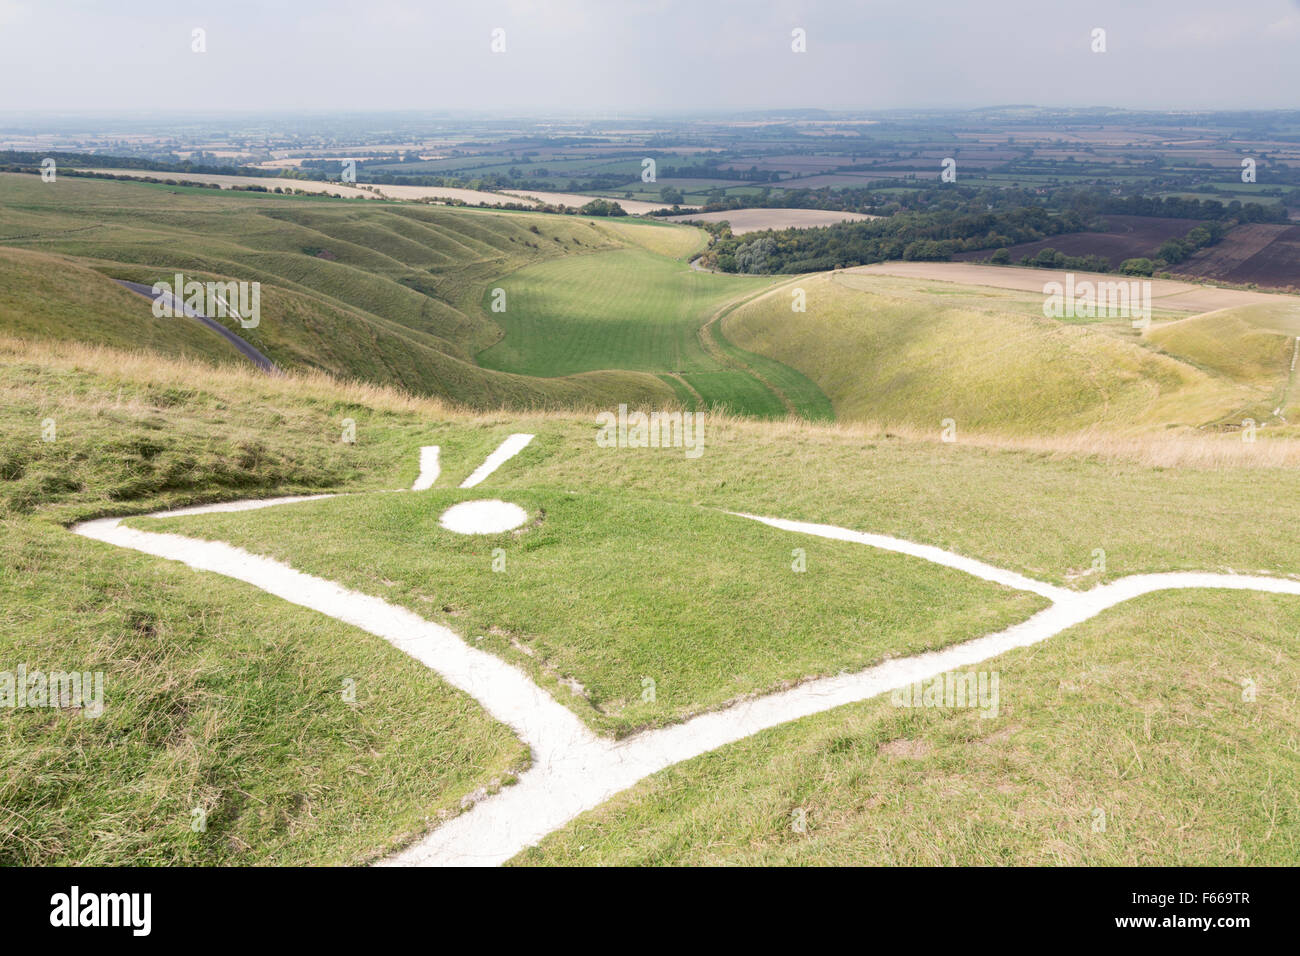 Looking from the Uffington White Horse towards the Manger and the Giants Steps, Oxfordshire, England, UK Stock Photo